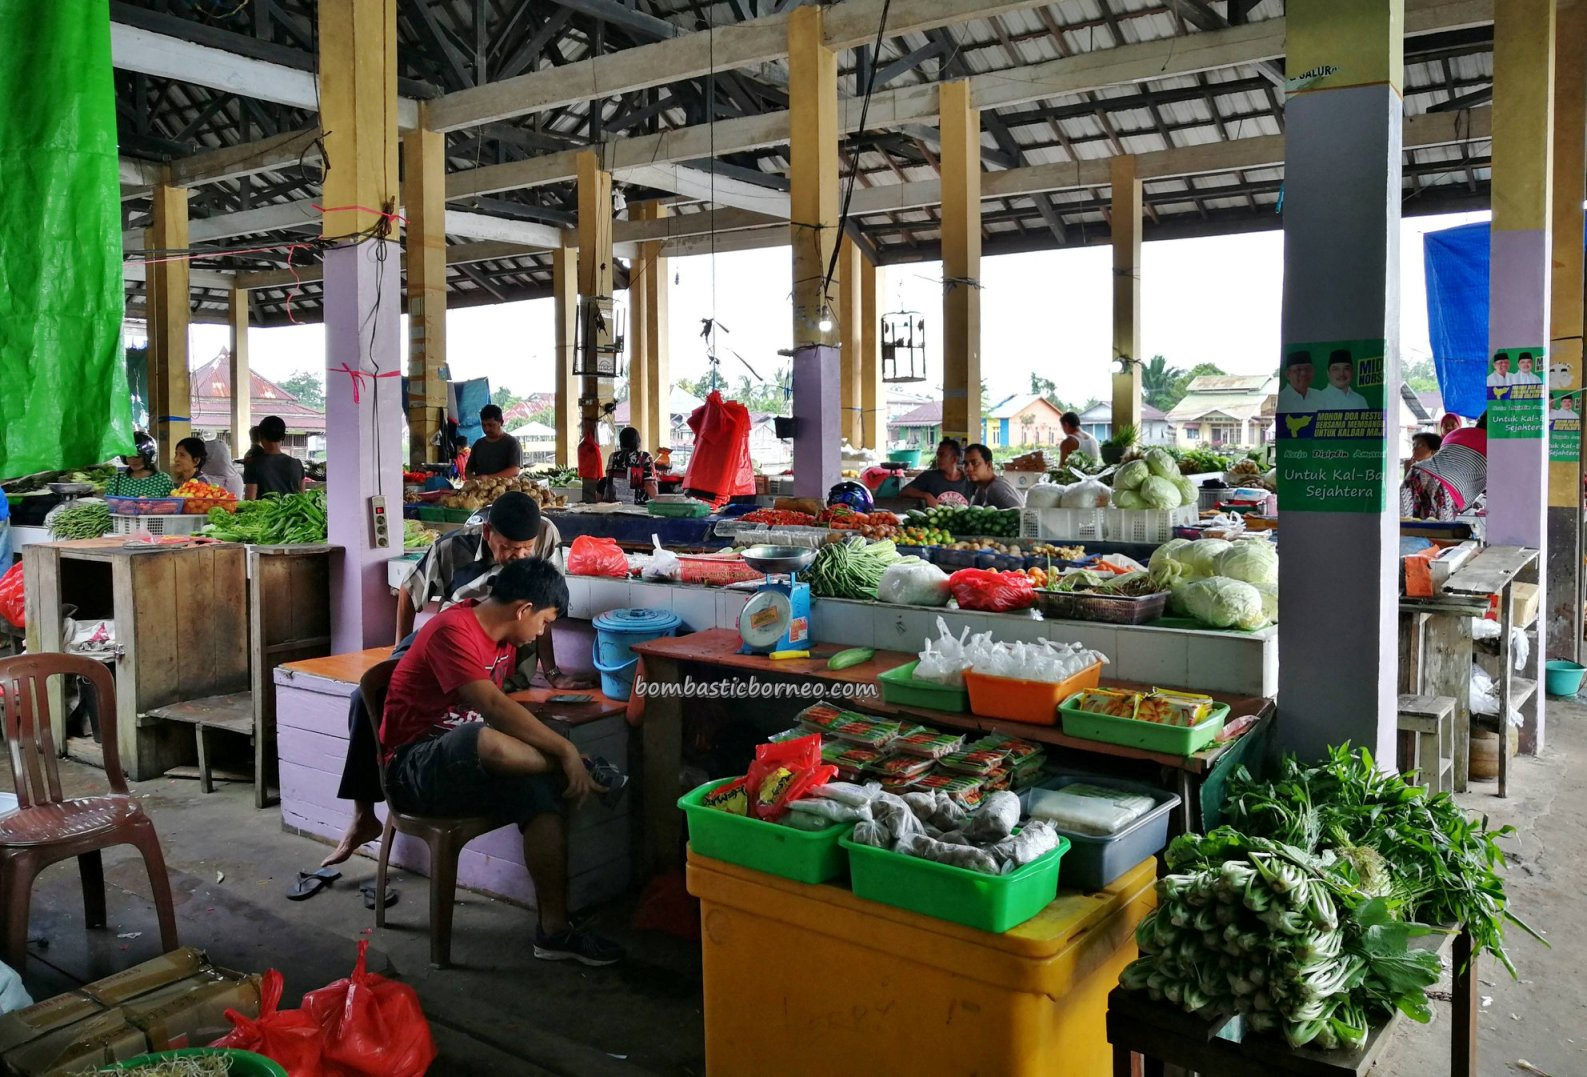 vegetable market, adventure, authentic, traditional, destination, native, malay village, Borneo, Obyek wisata, Tourism, tourist attraction, travel guide, crossborder, 印尼西加里曼丹, 三发旅游景点,